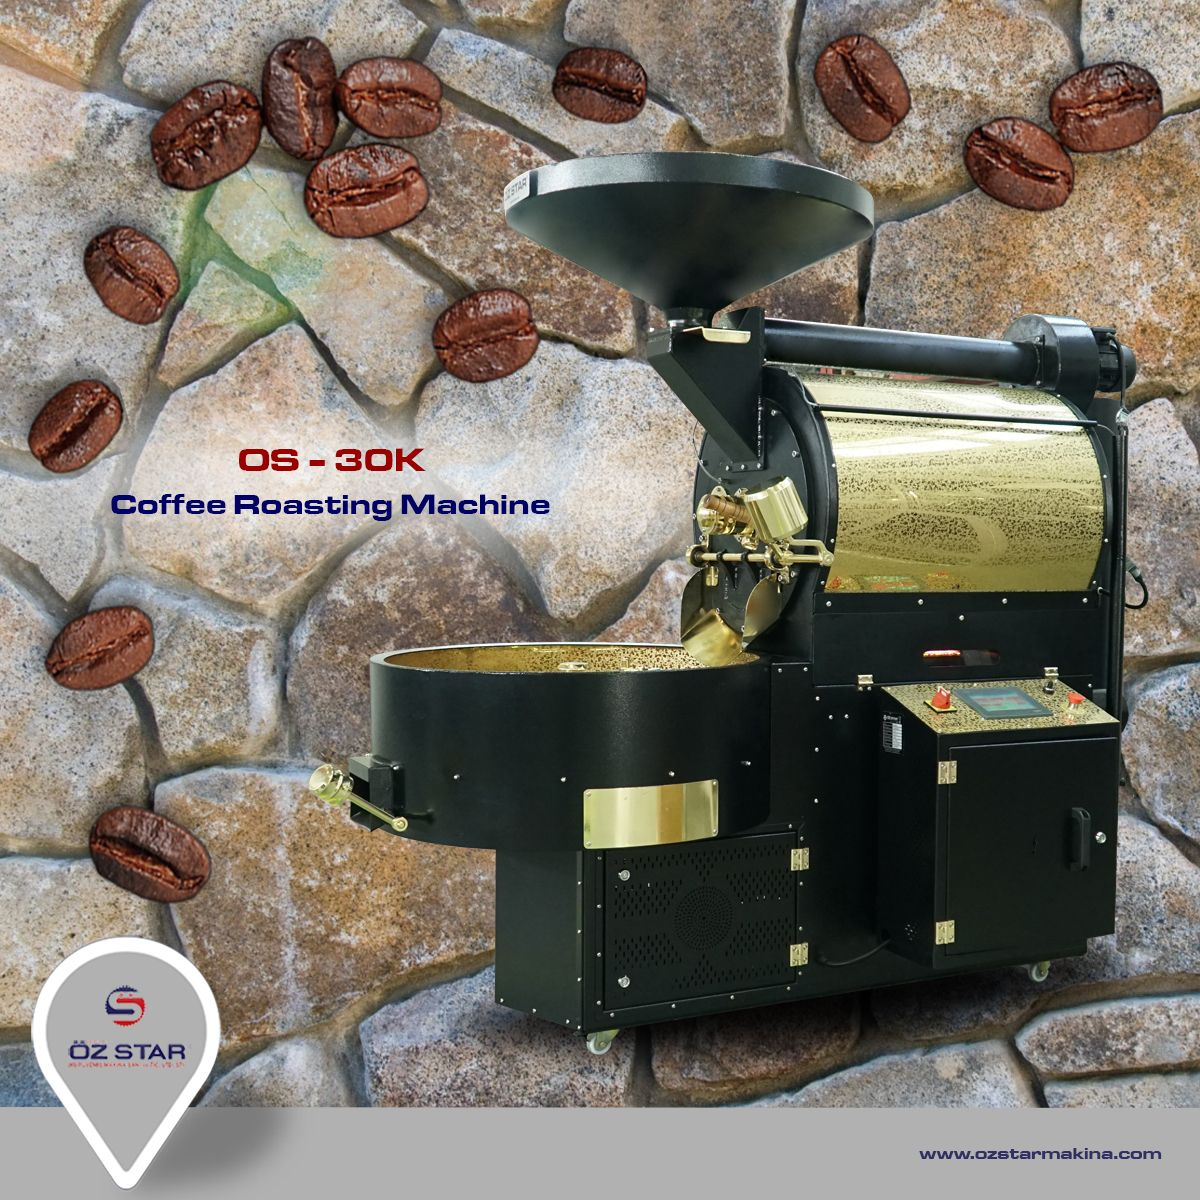 Coffee Roasting Machine Coffee Roasting Machine Coffee Bean Roasters Coffee Roasting